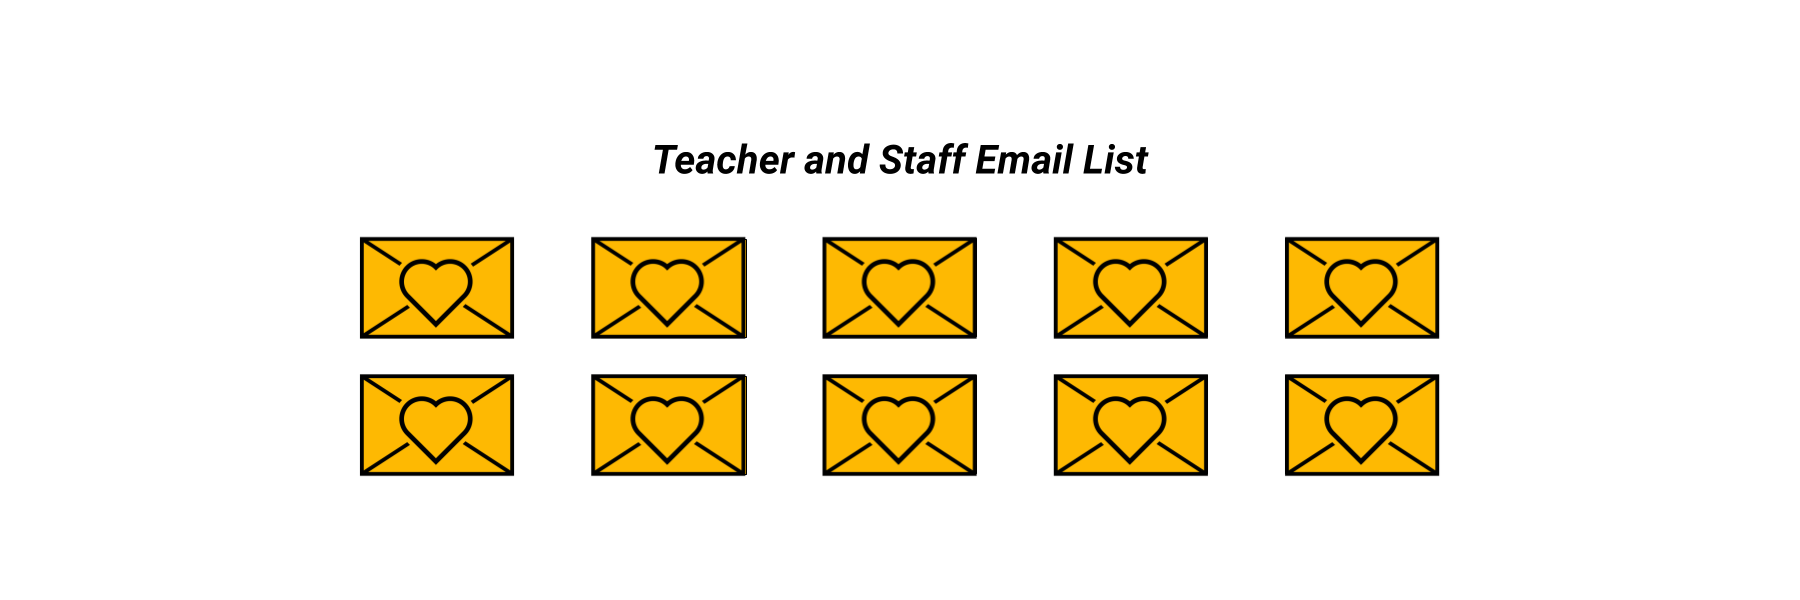 Teacher and Staff Email List